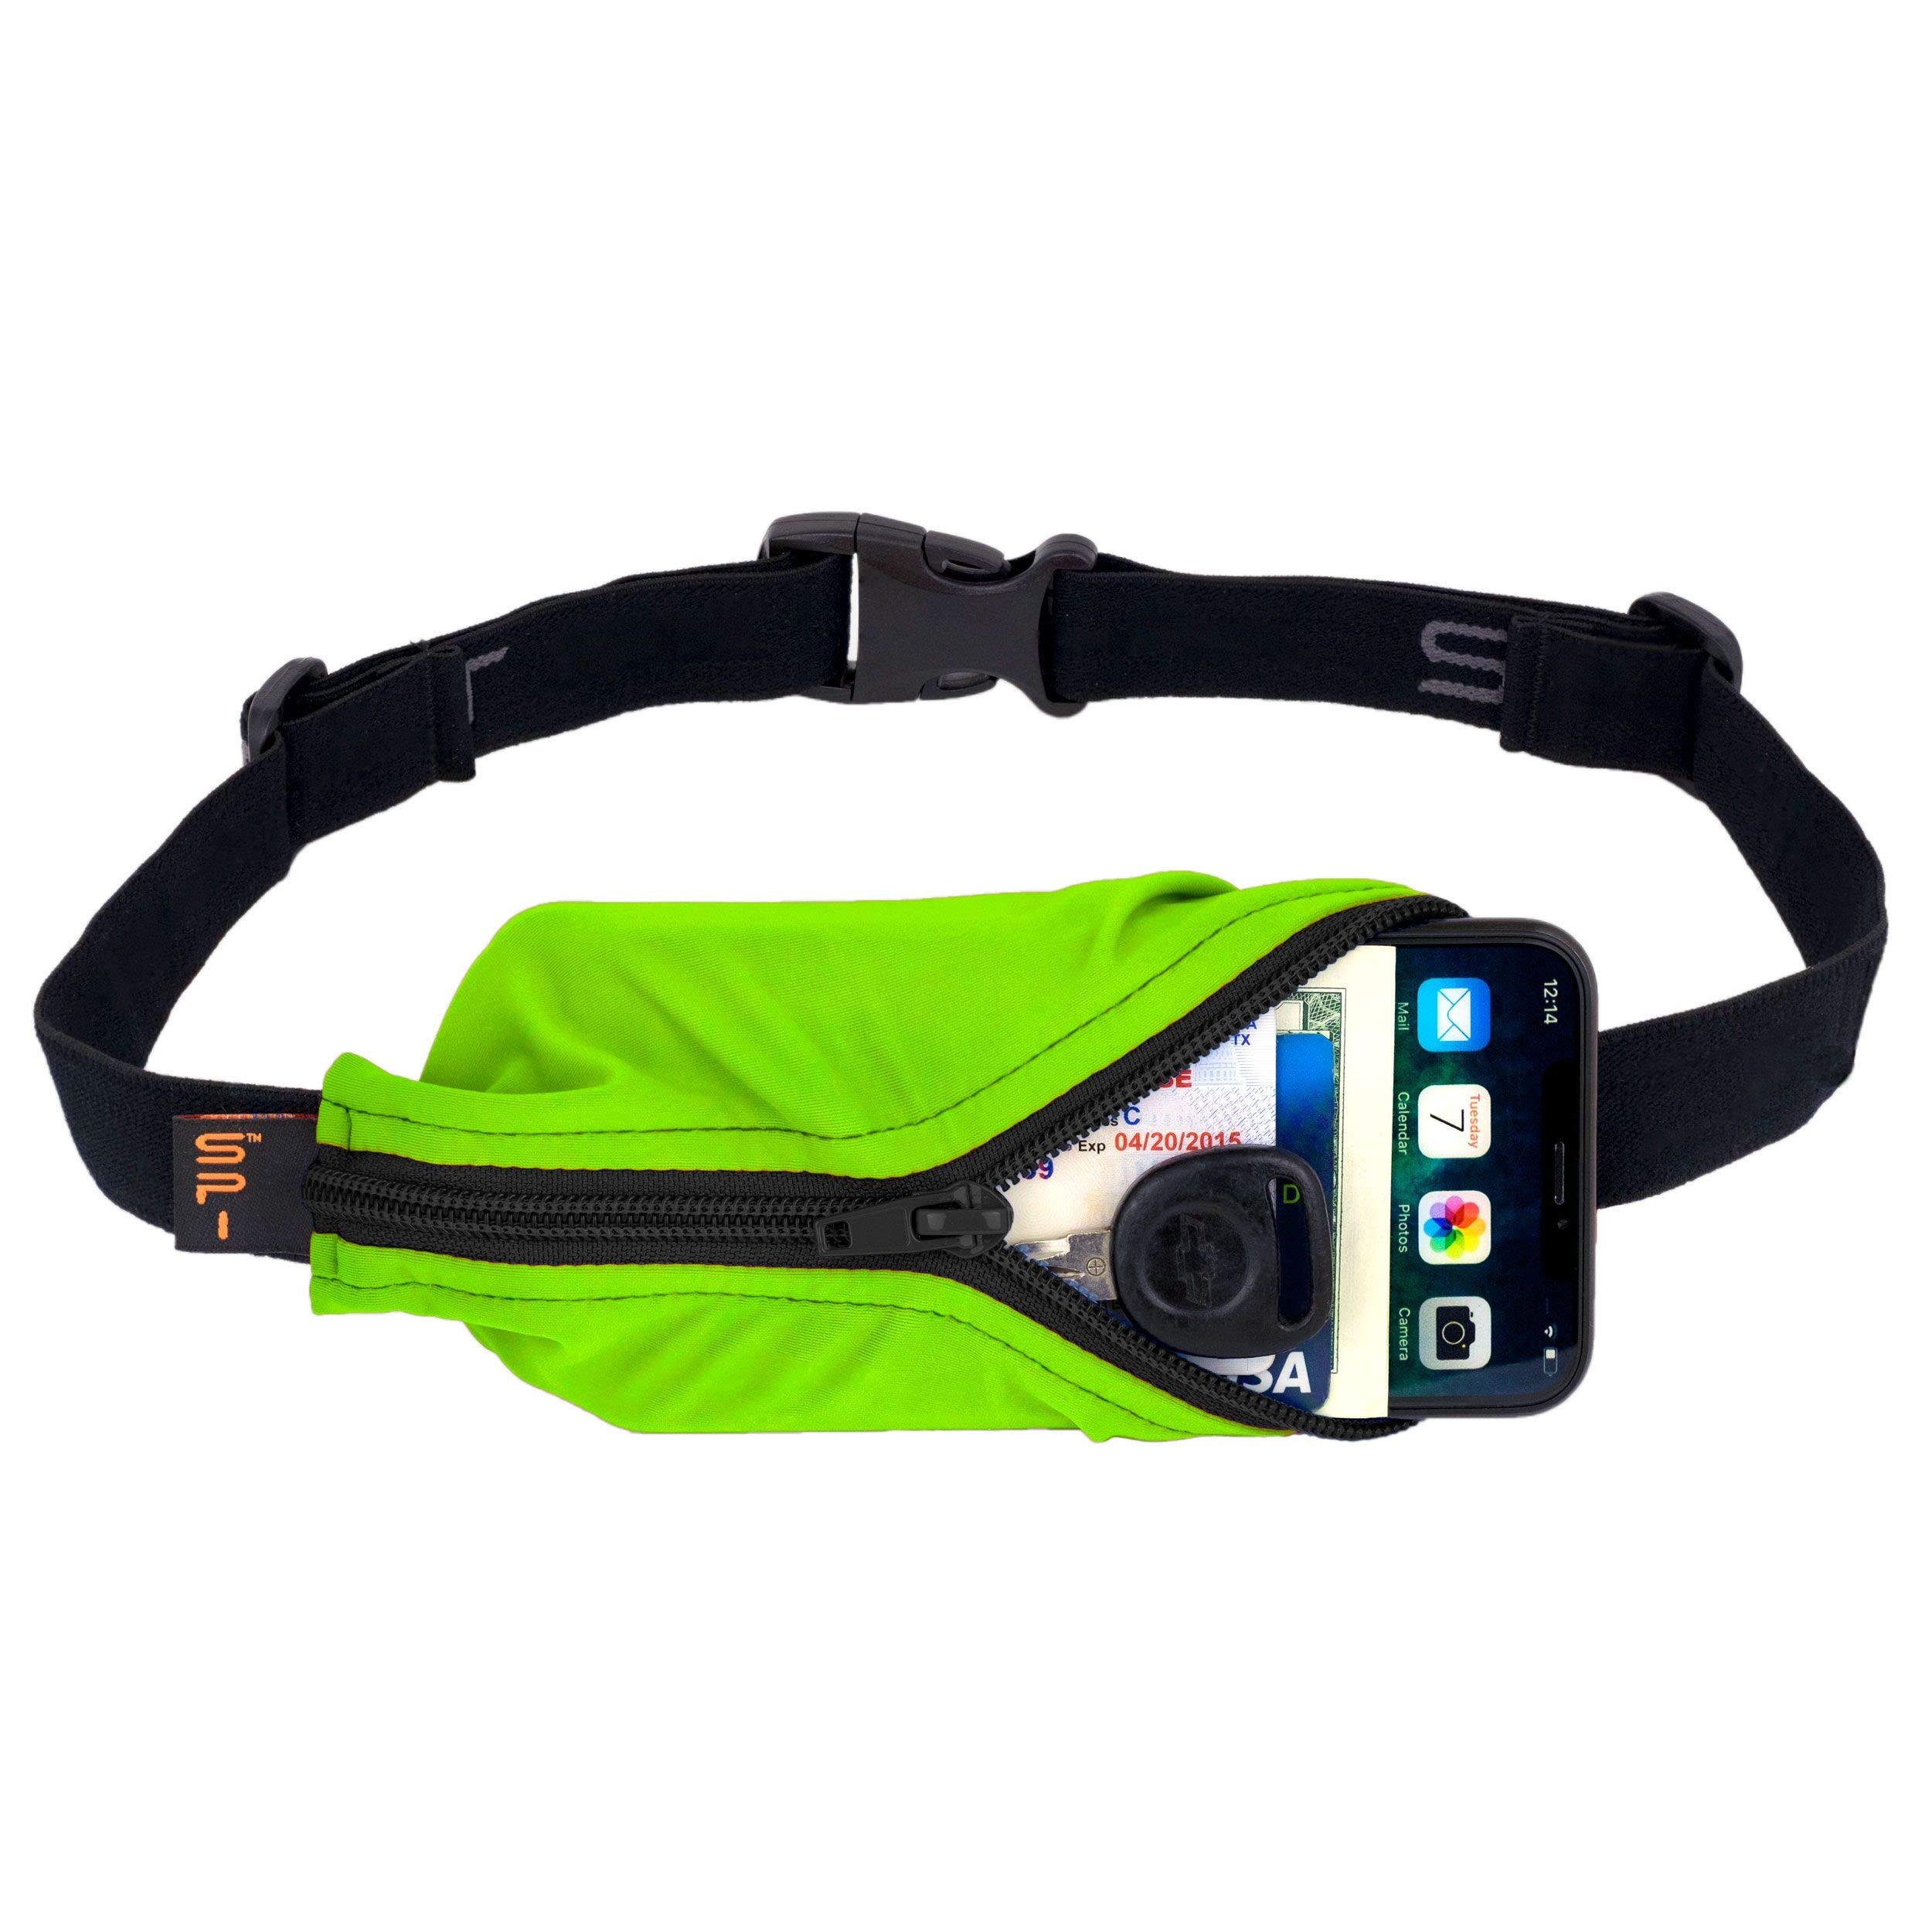 SPIbelt Sports/Running Belt: Original - No-Bounce Running Belt for Runners, Athletes and Adventurers - Fits iPhone 6 and Other Large Phones, Lime by SPIbelt